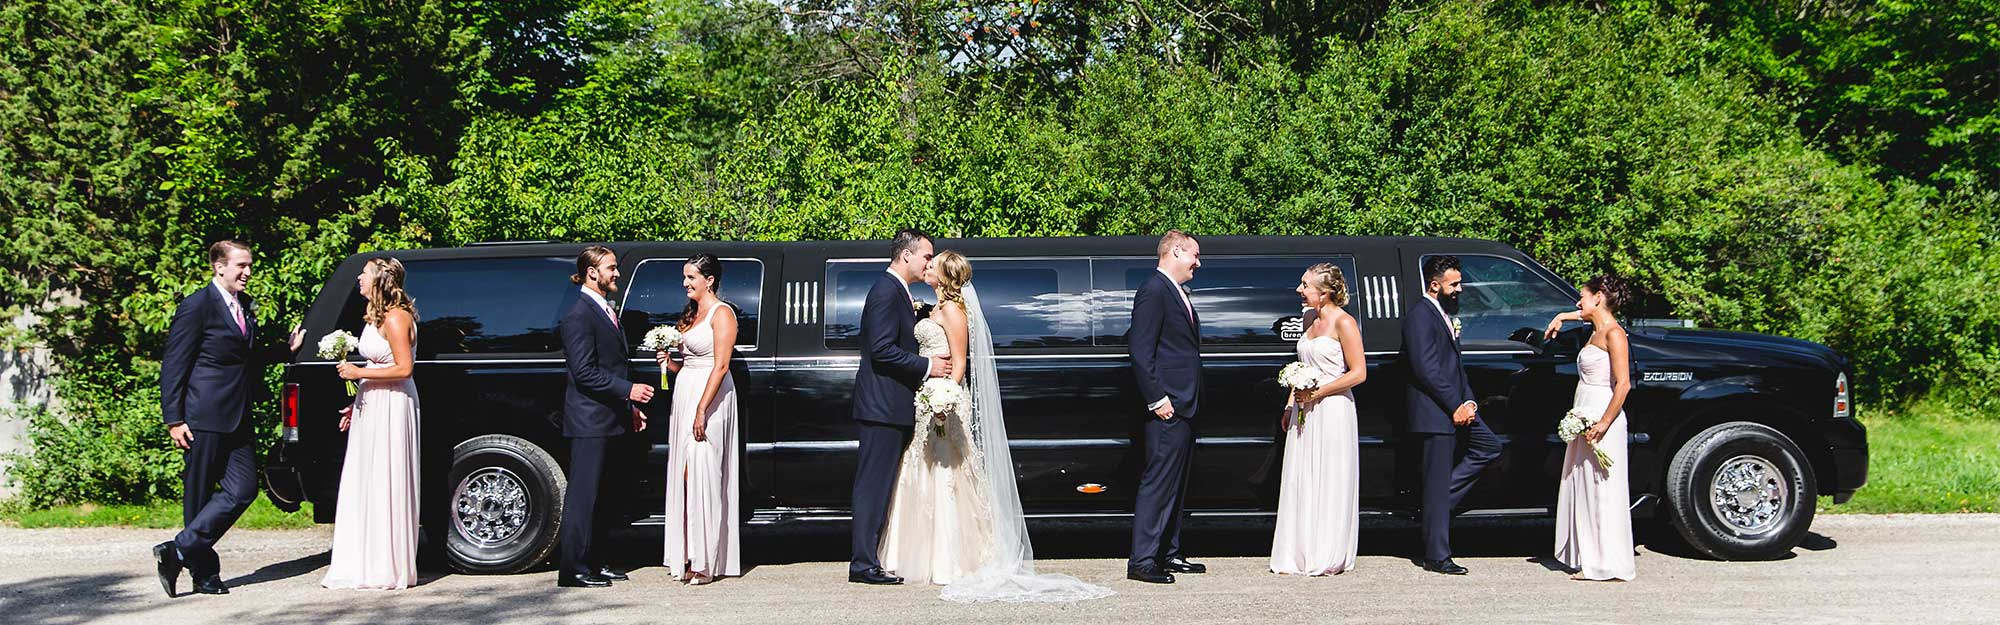 luxury chauffeured wedding limo services